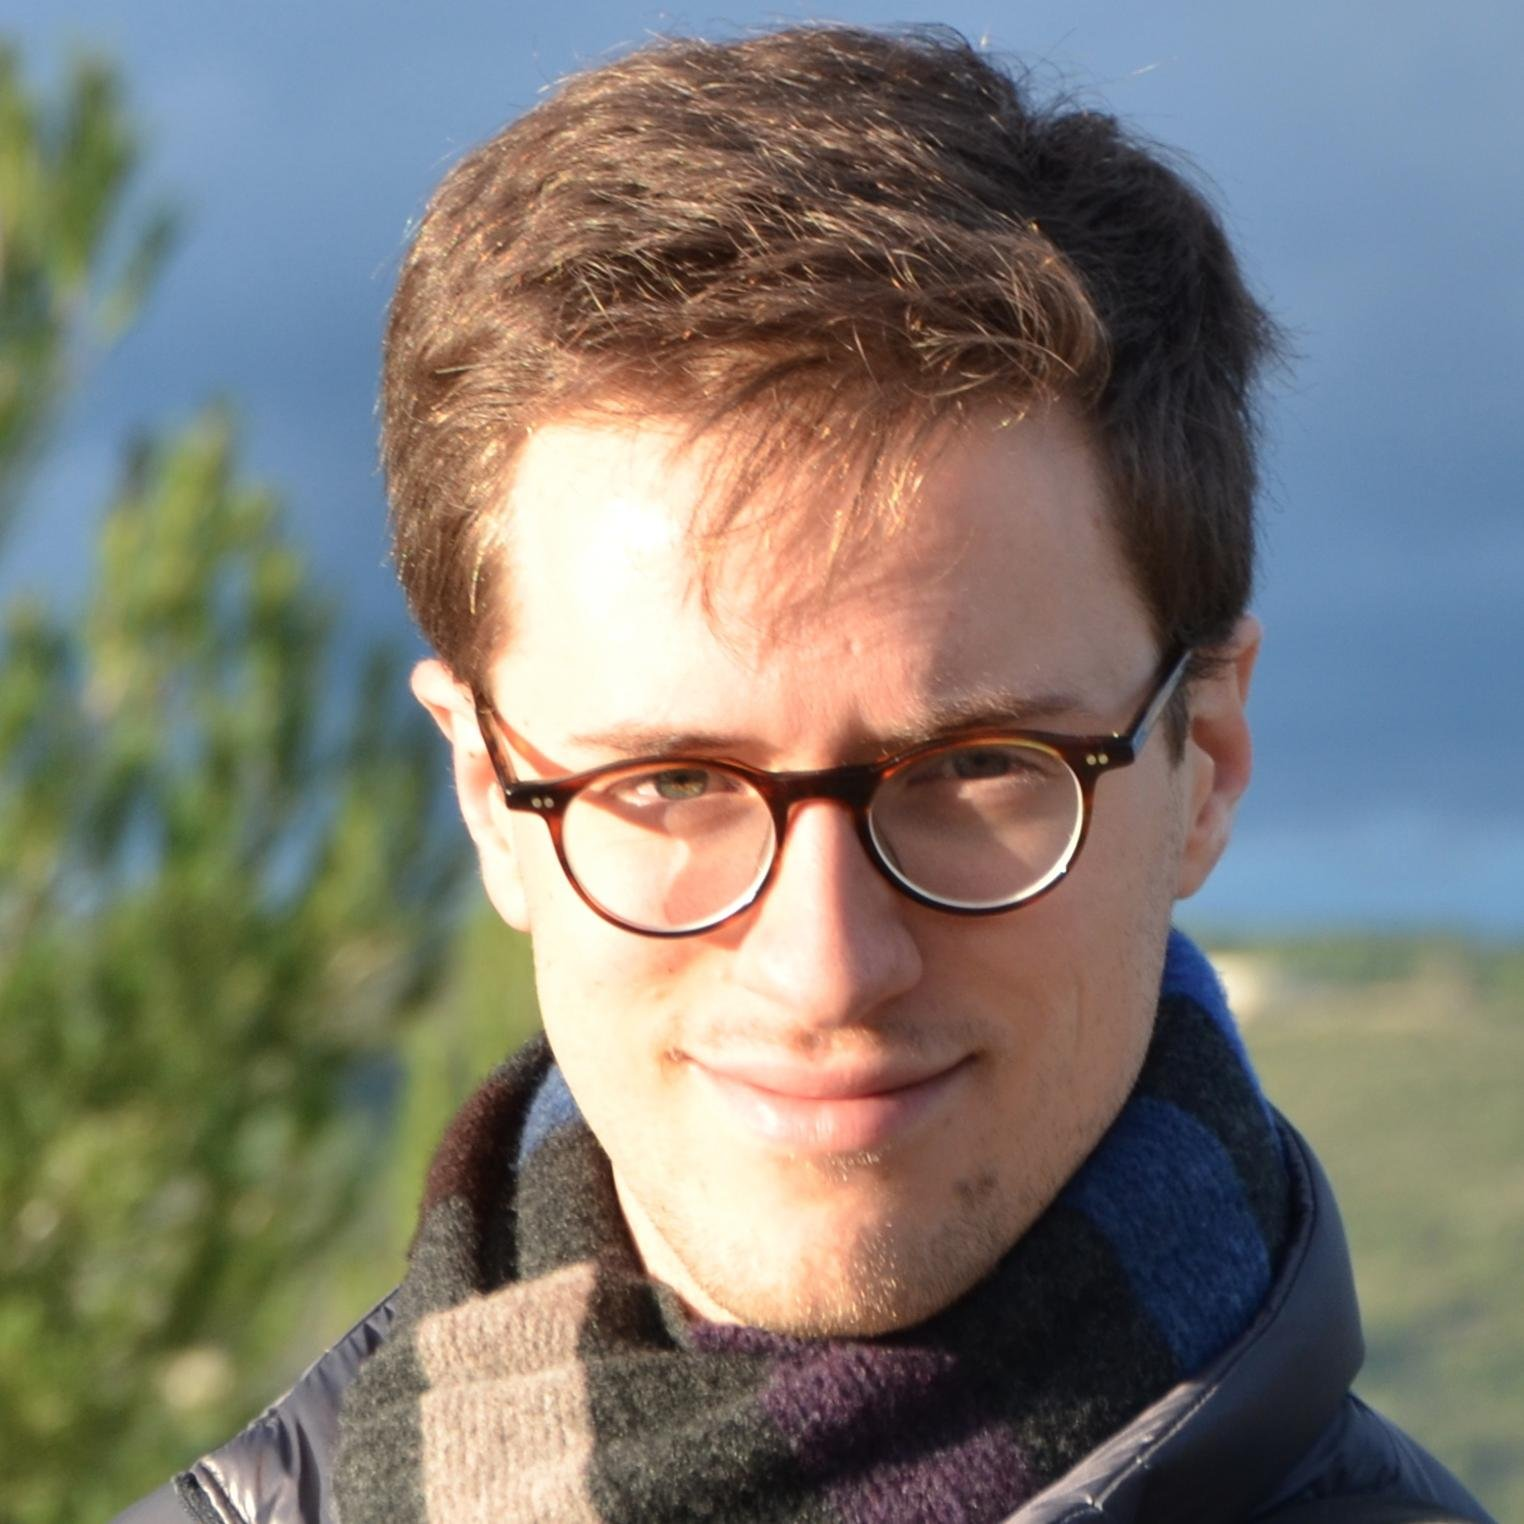 Interview with New York Times journalist and alumni, Aurelien Breeden